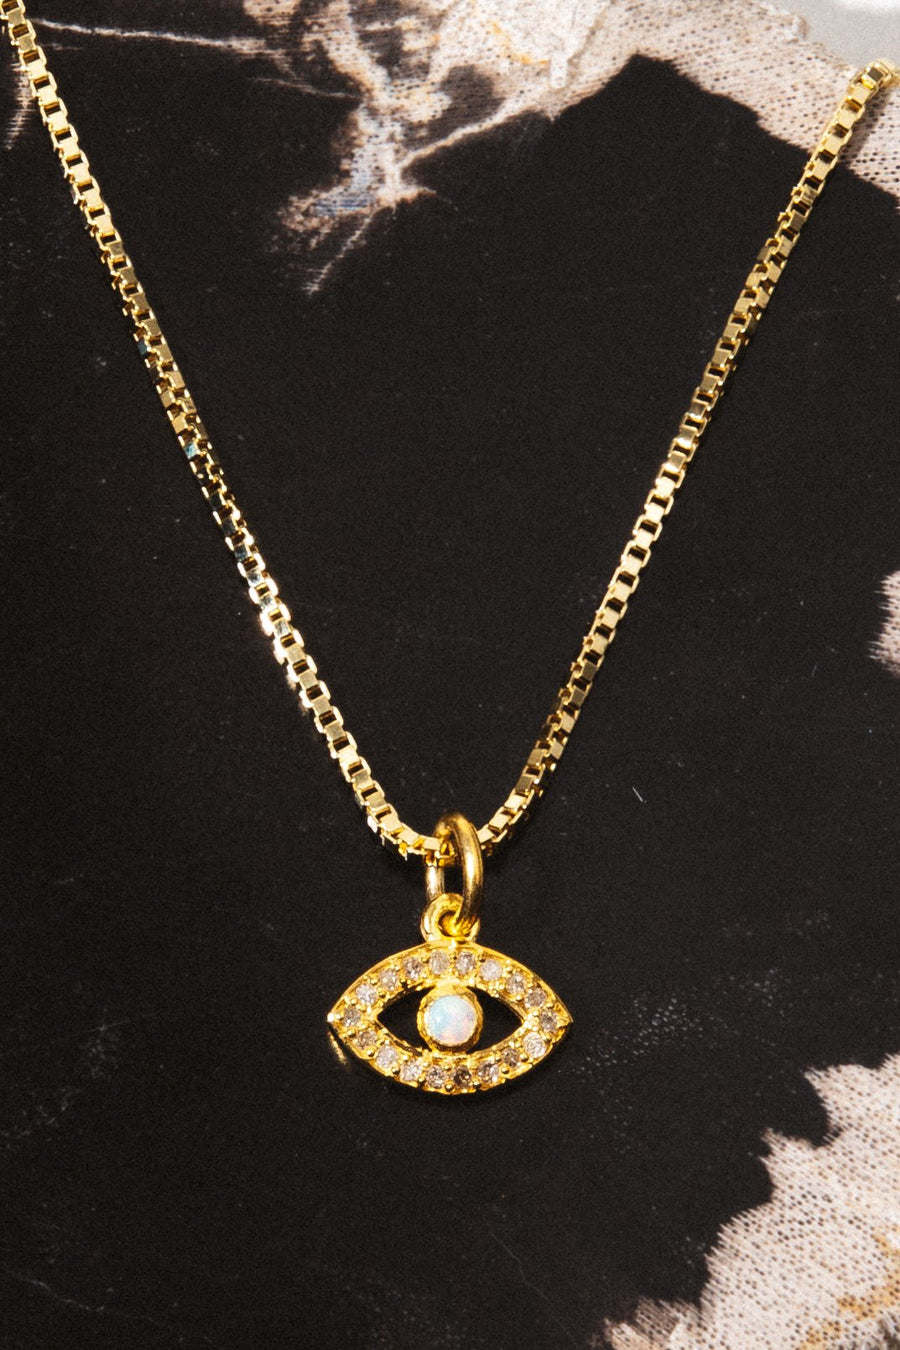 Tresor Jewelry 14 Inches / Opal Evil Eye Pavè Diamond Necklace